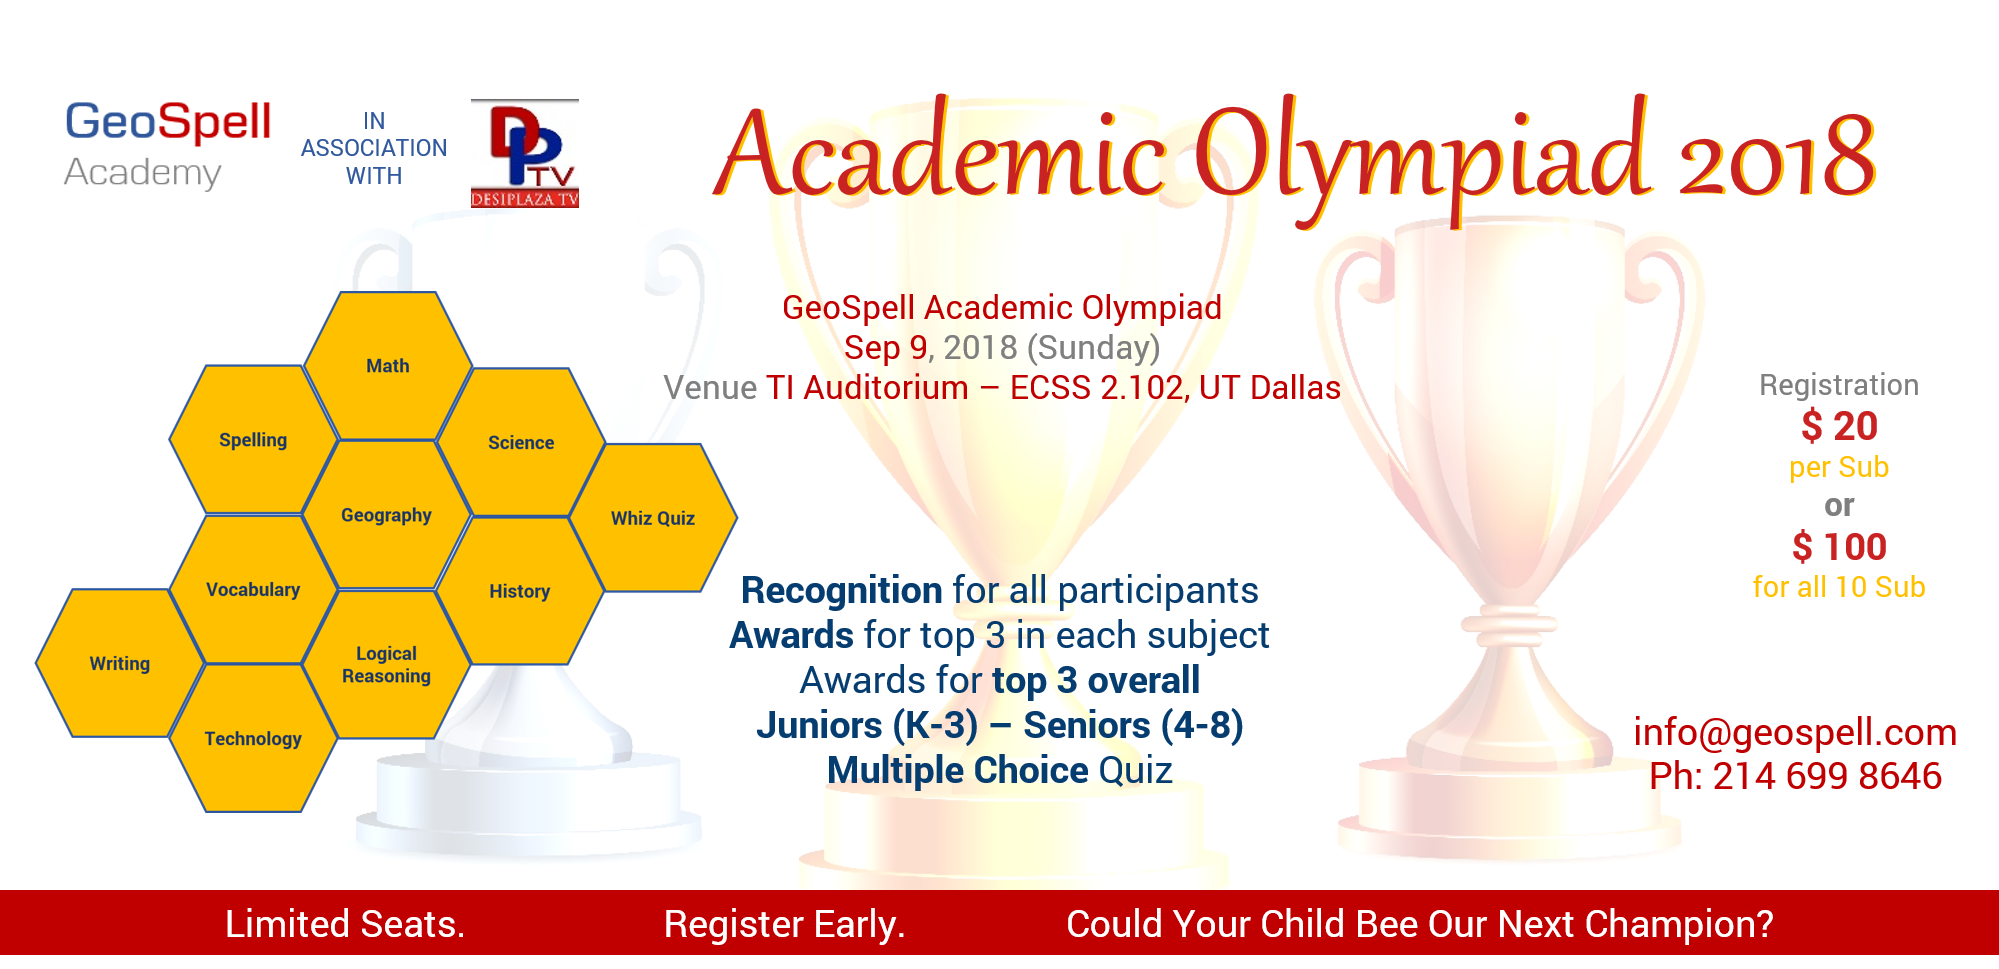 academicOlympaid2018-1